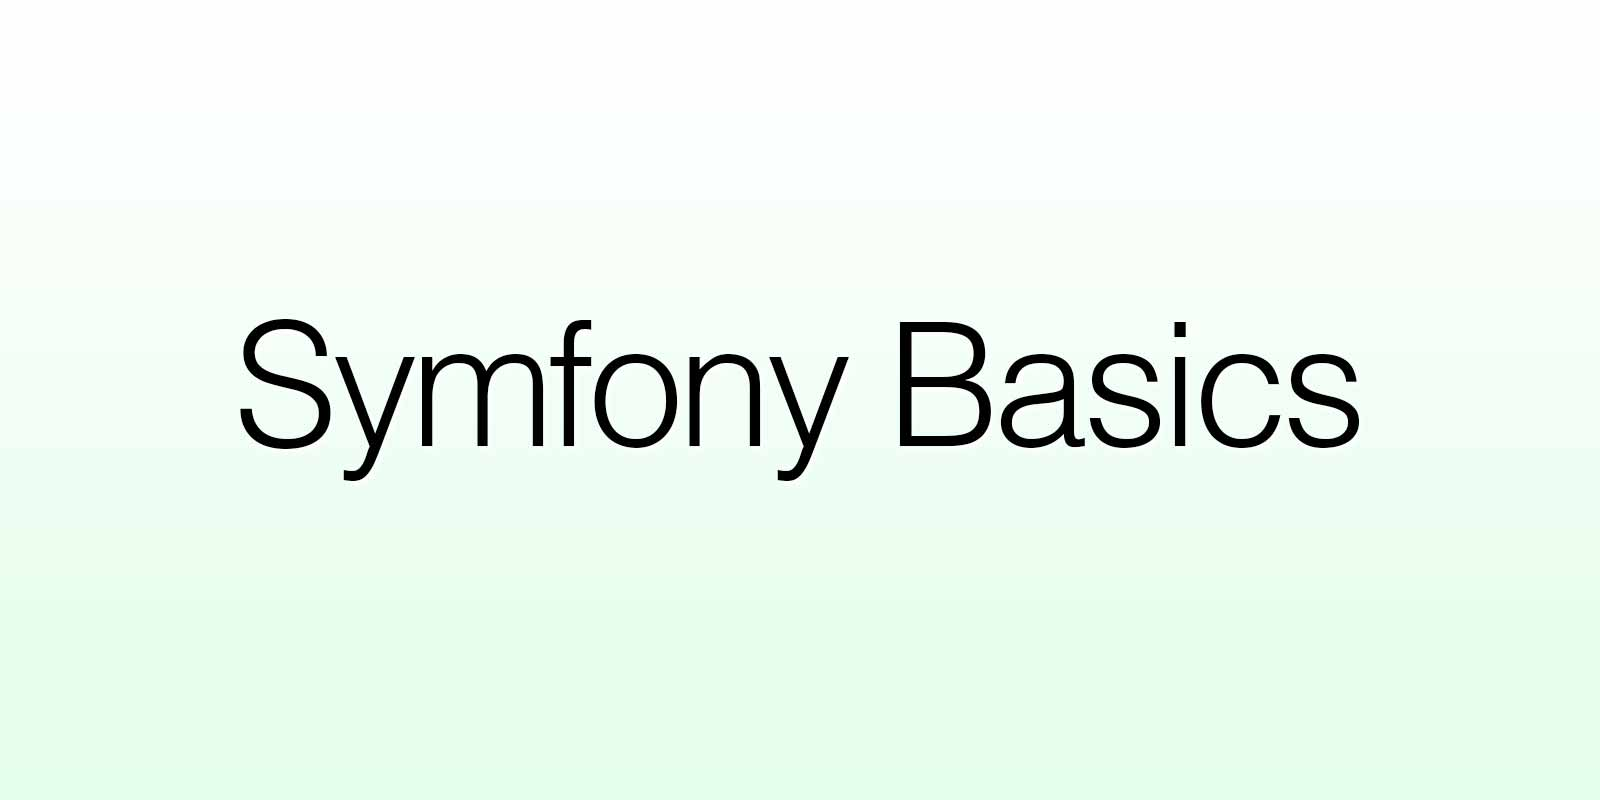 Symfony Basics tutorial series